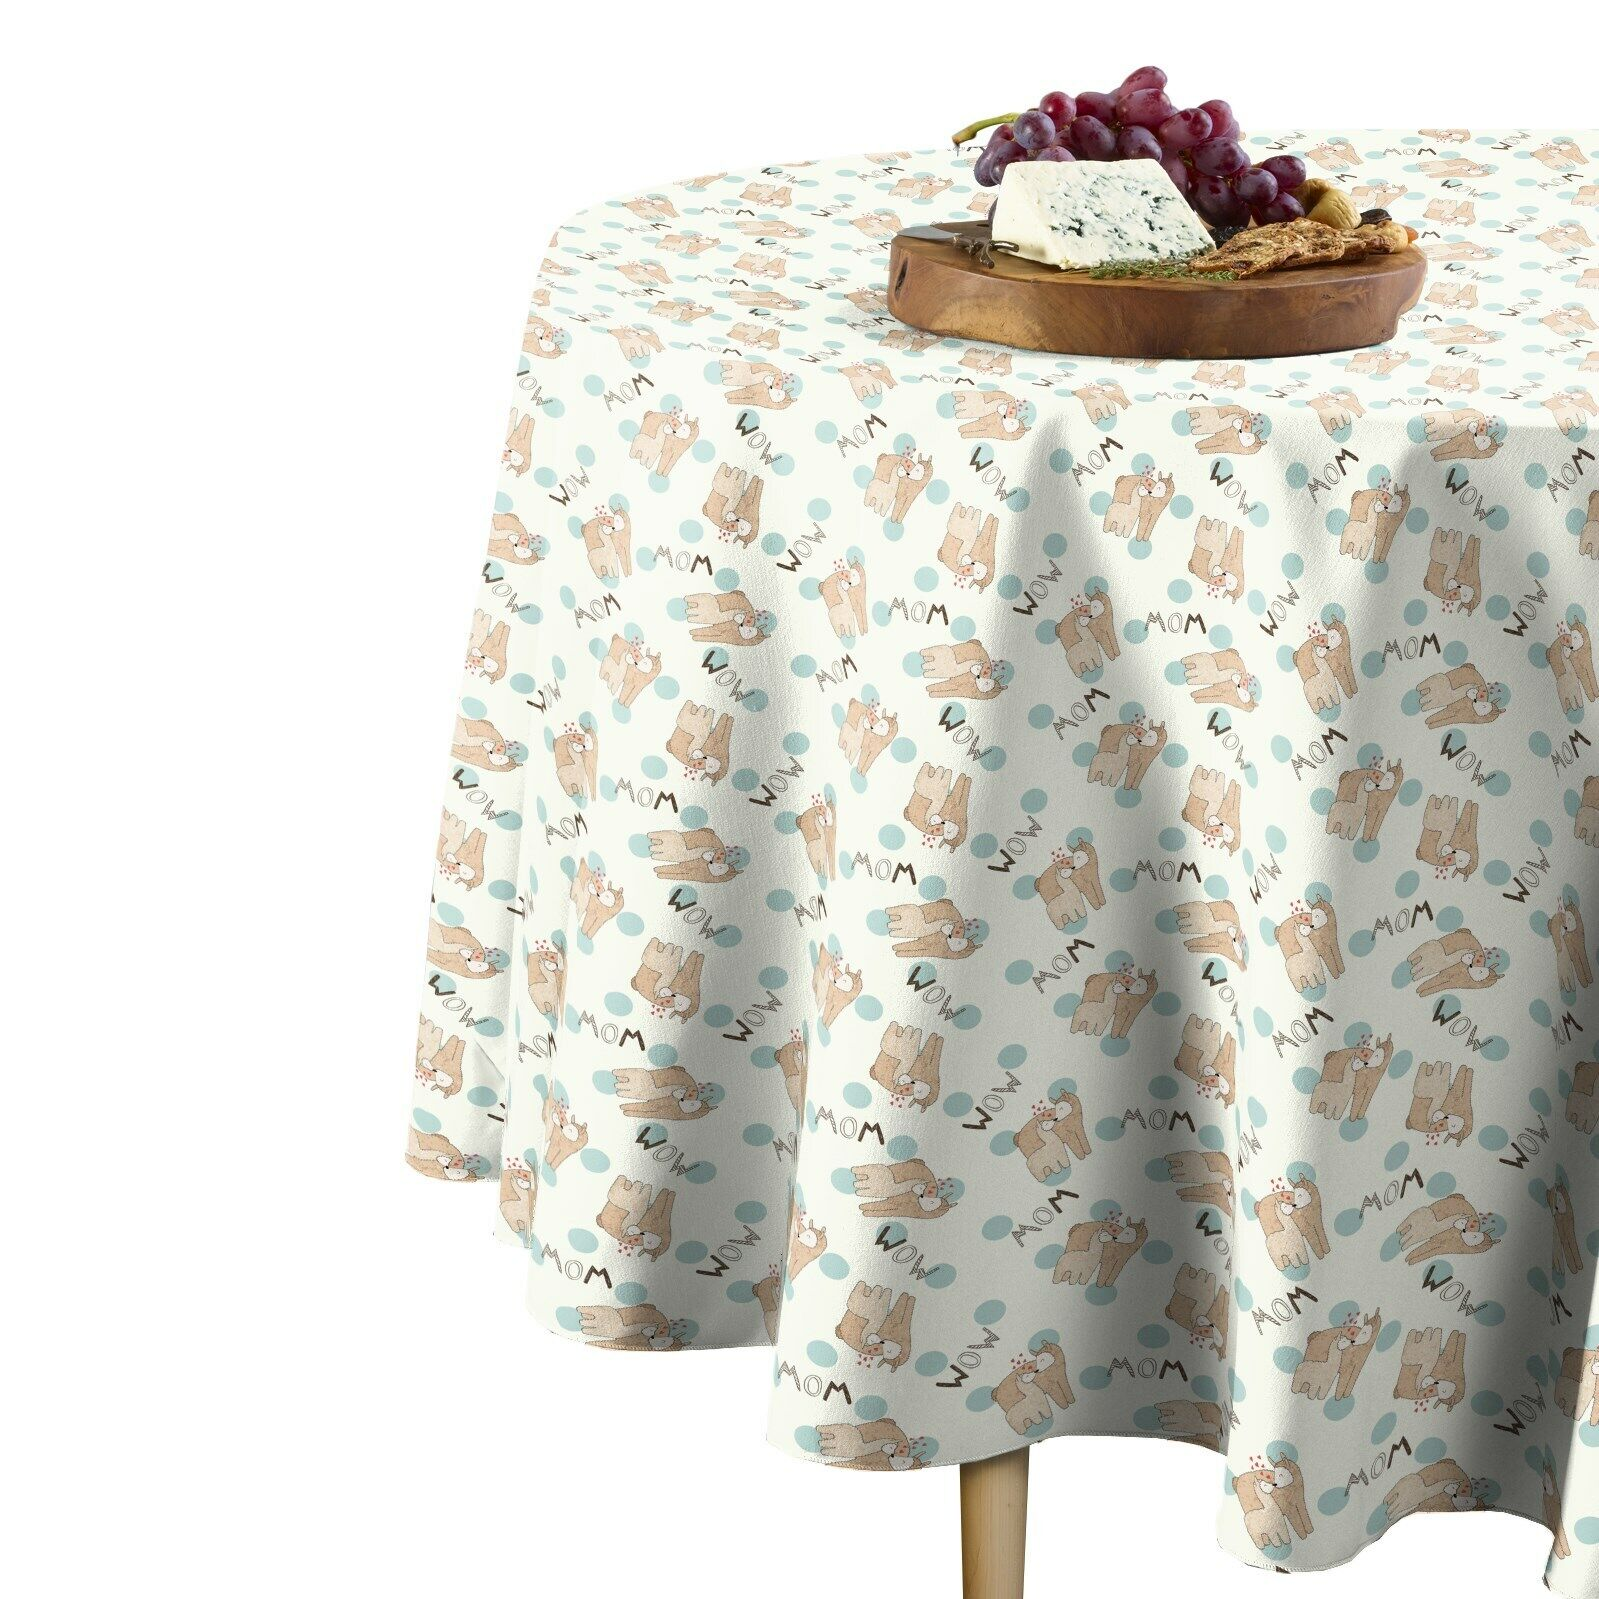 Lama Mom Toss Signature Round Tablecloth Assorted Größes